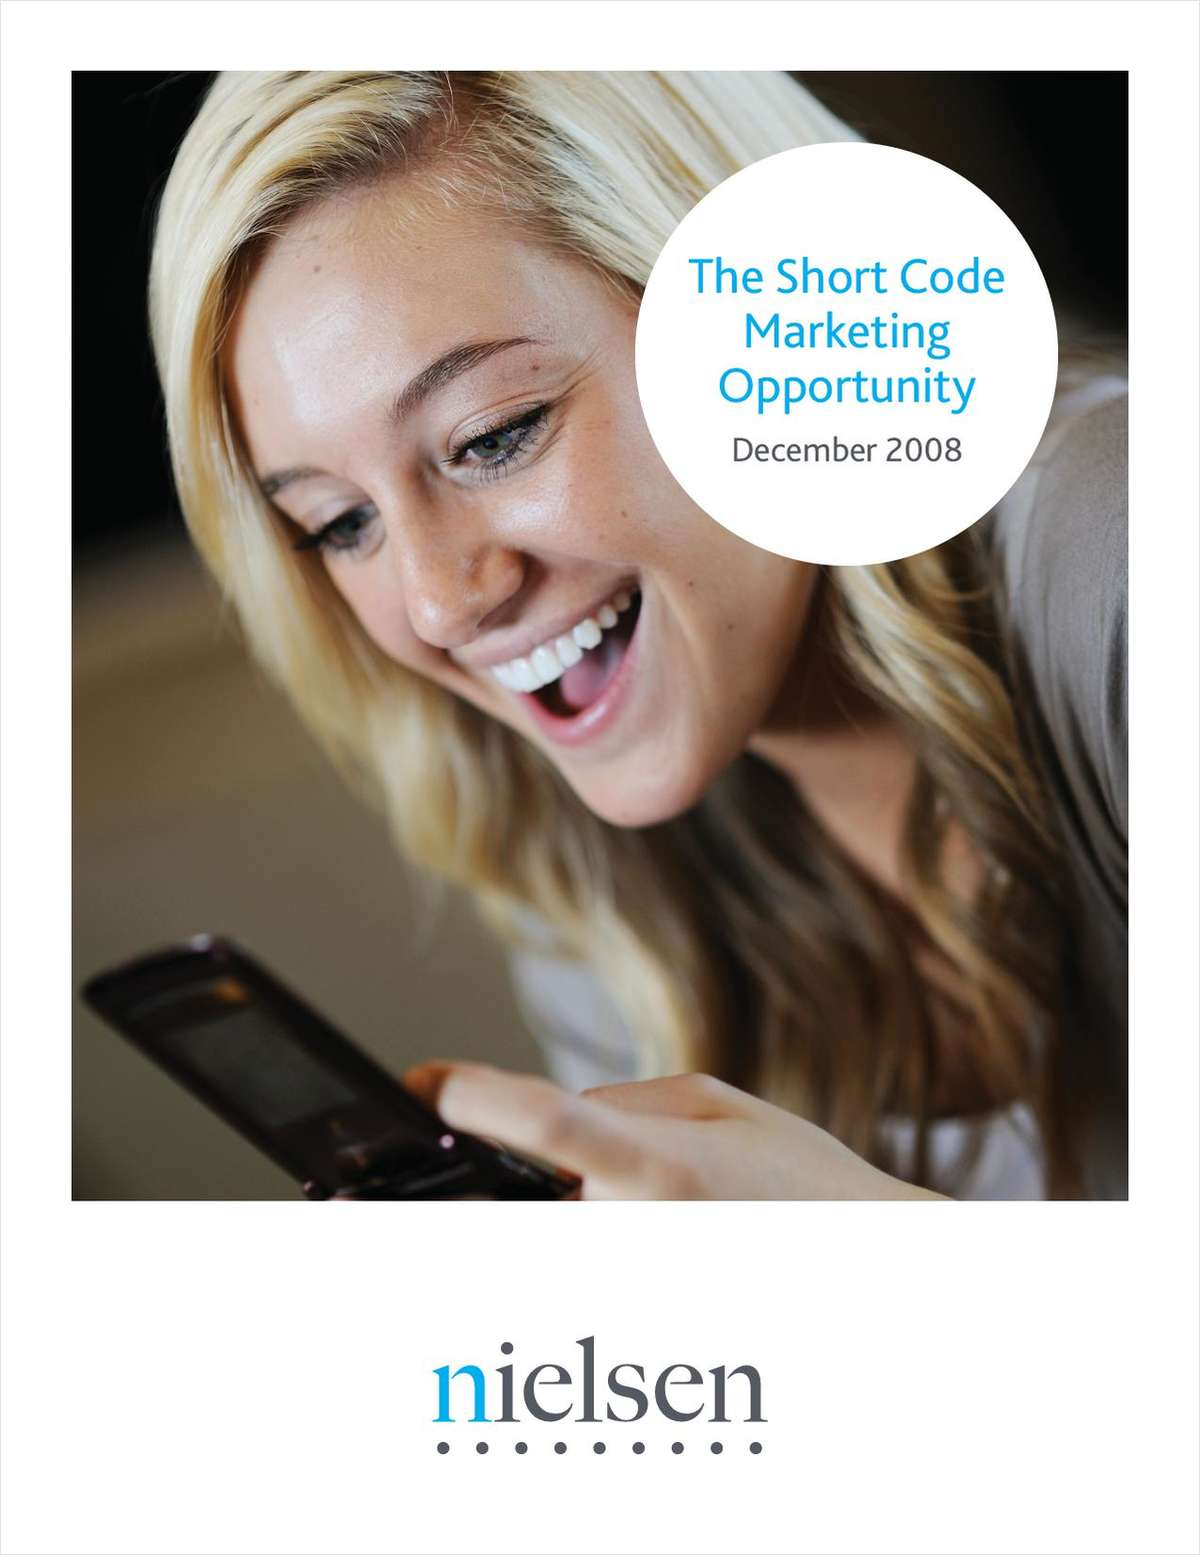 The Short Code Marketing Opportunity